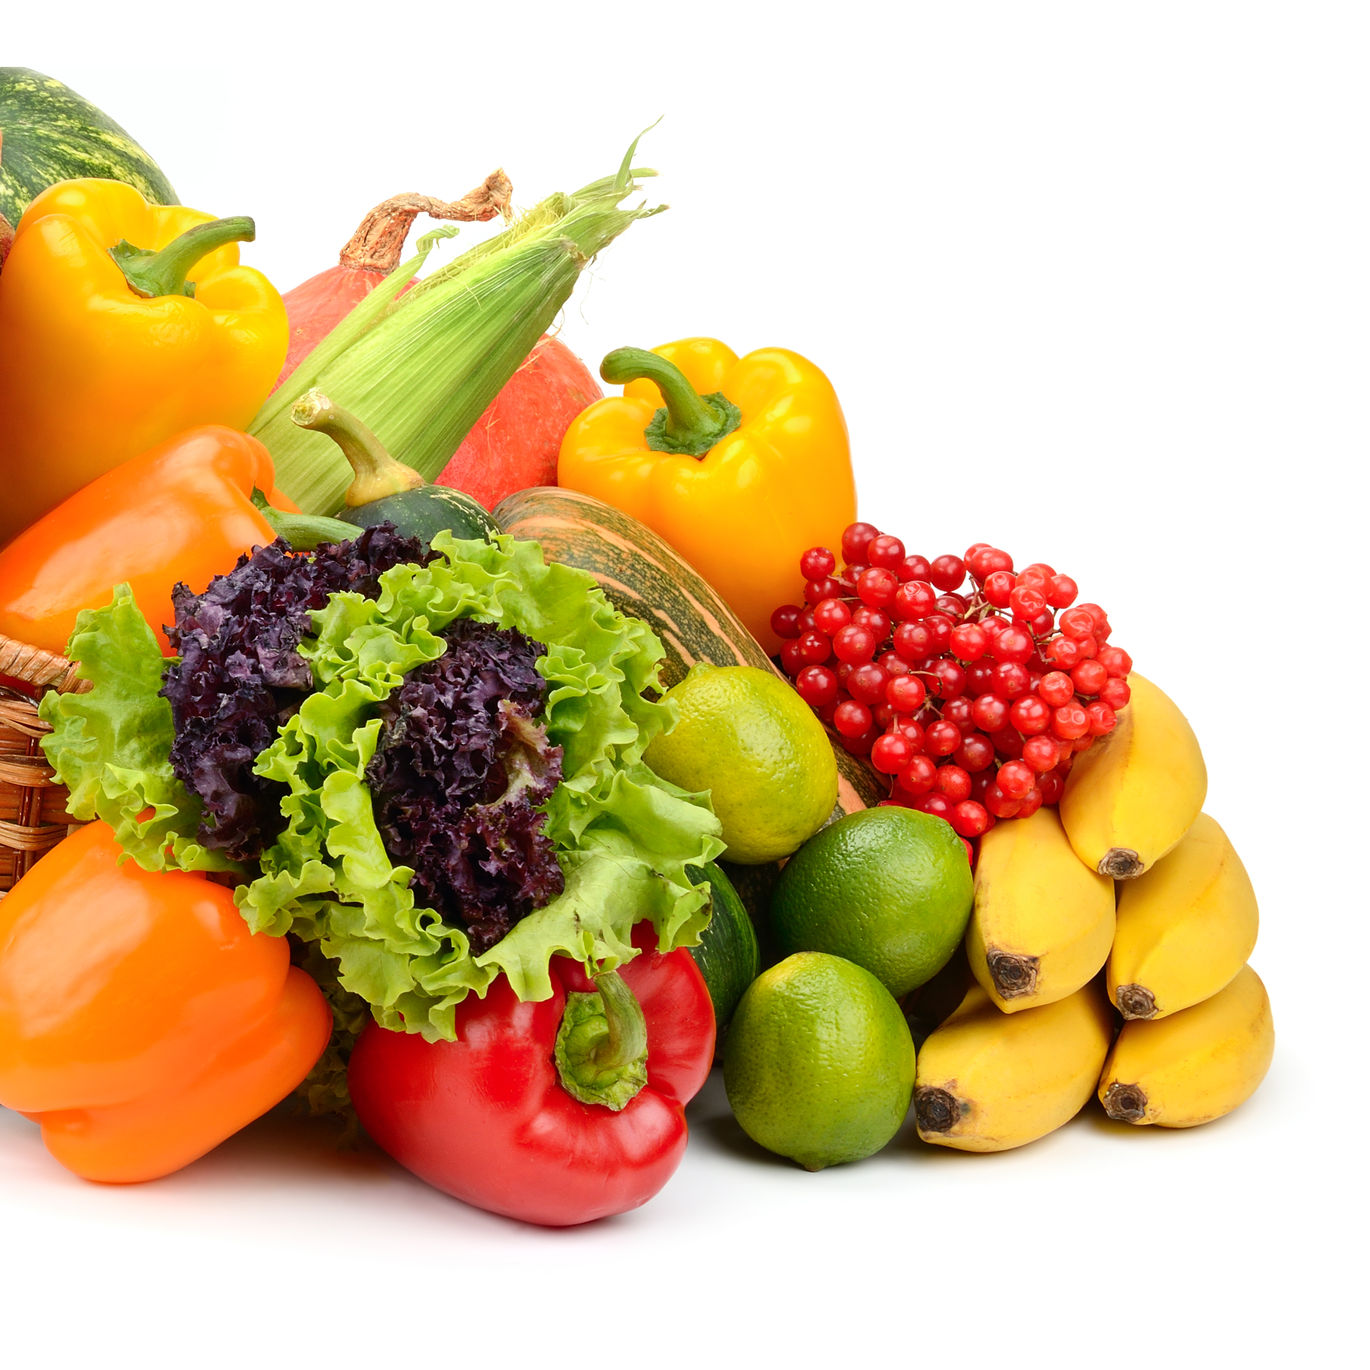 one in ten Americans eat recommended amount of fruit and vegetables